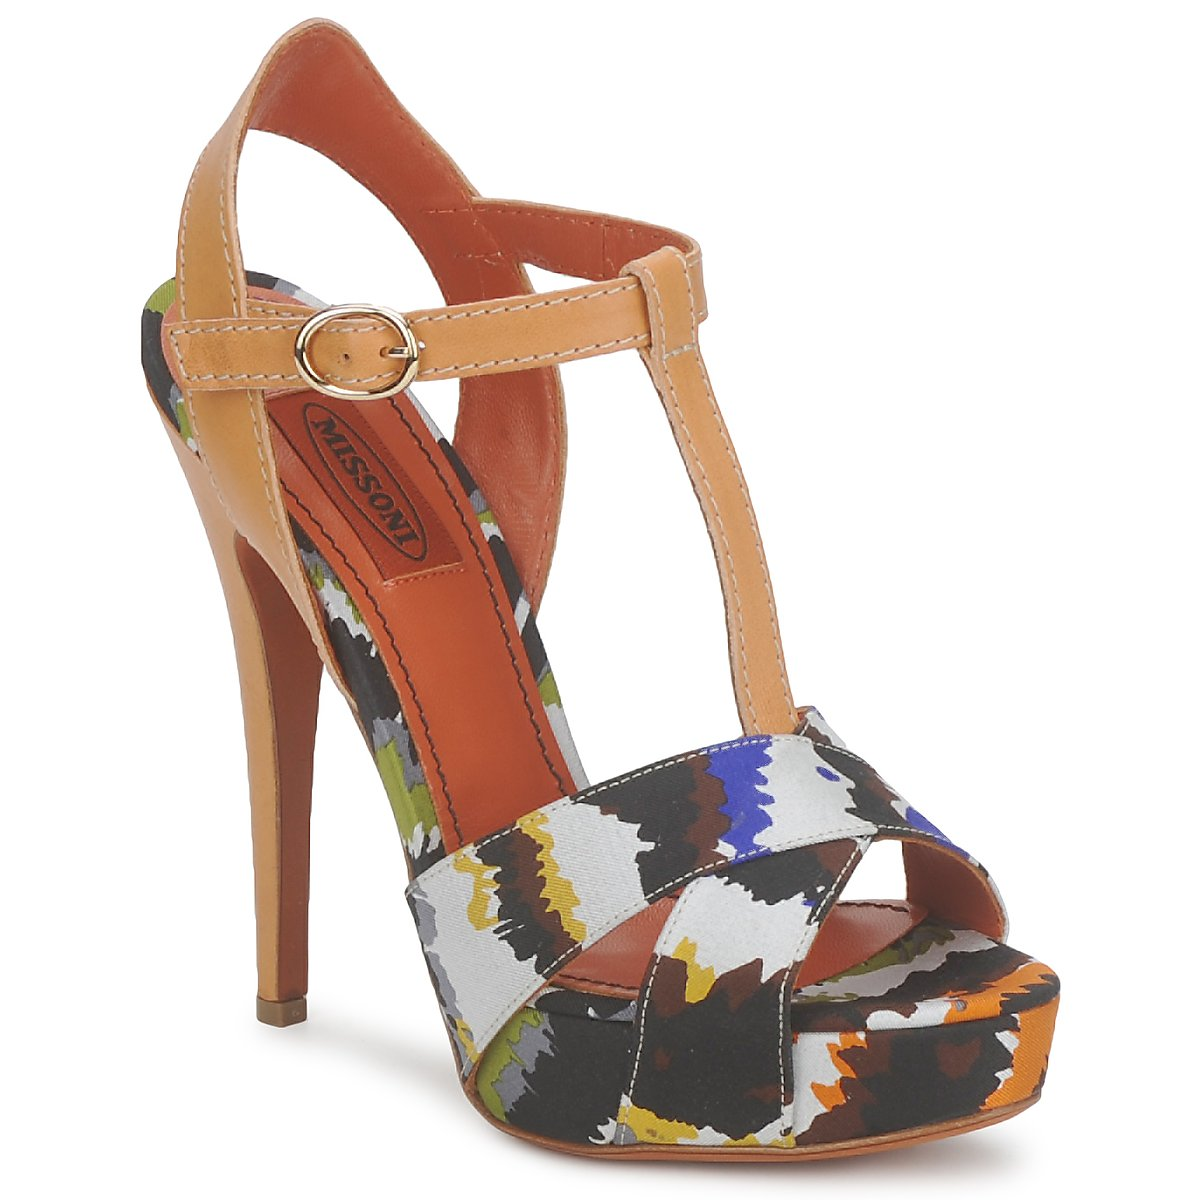 Sandale Missoni TM69 Multicolore